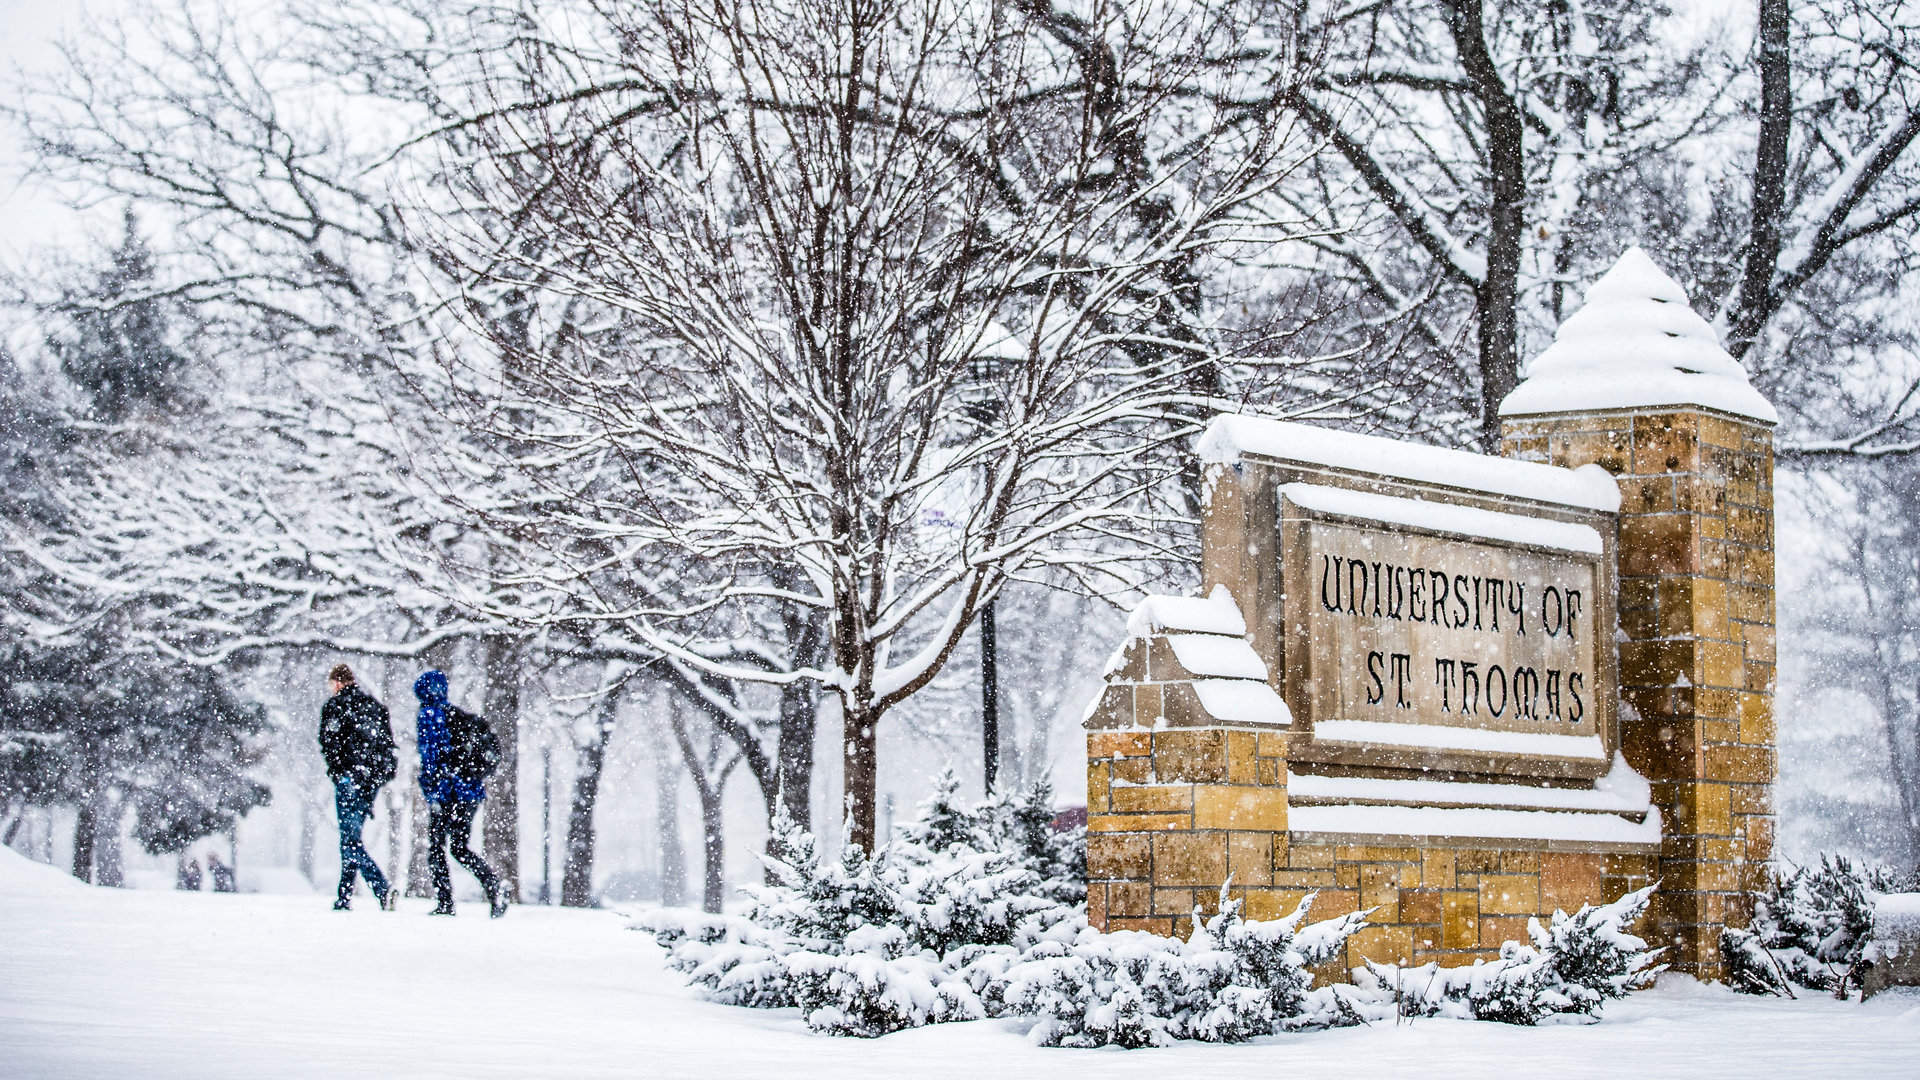 University of St. Thomas stone sign covered in snow.